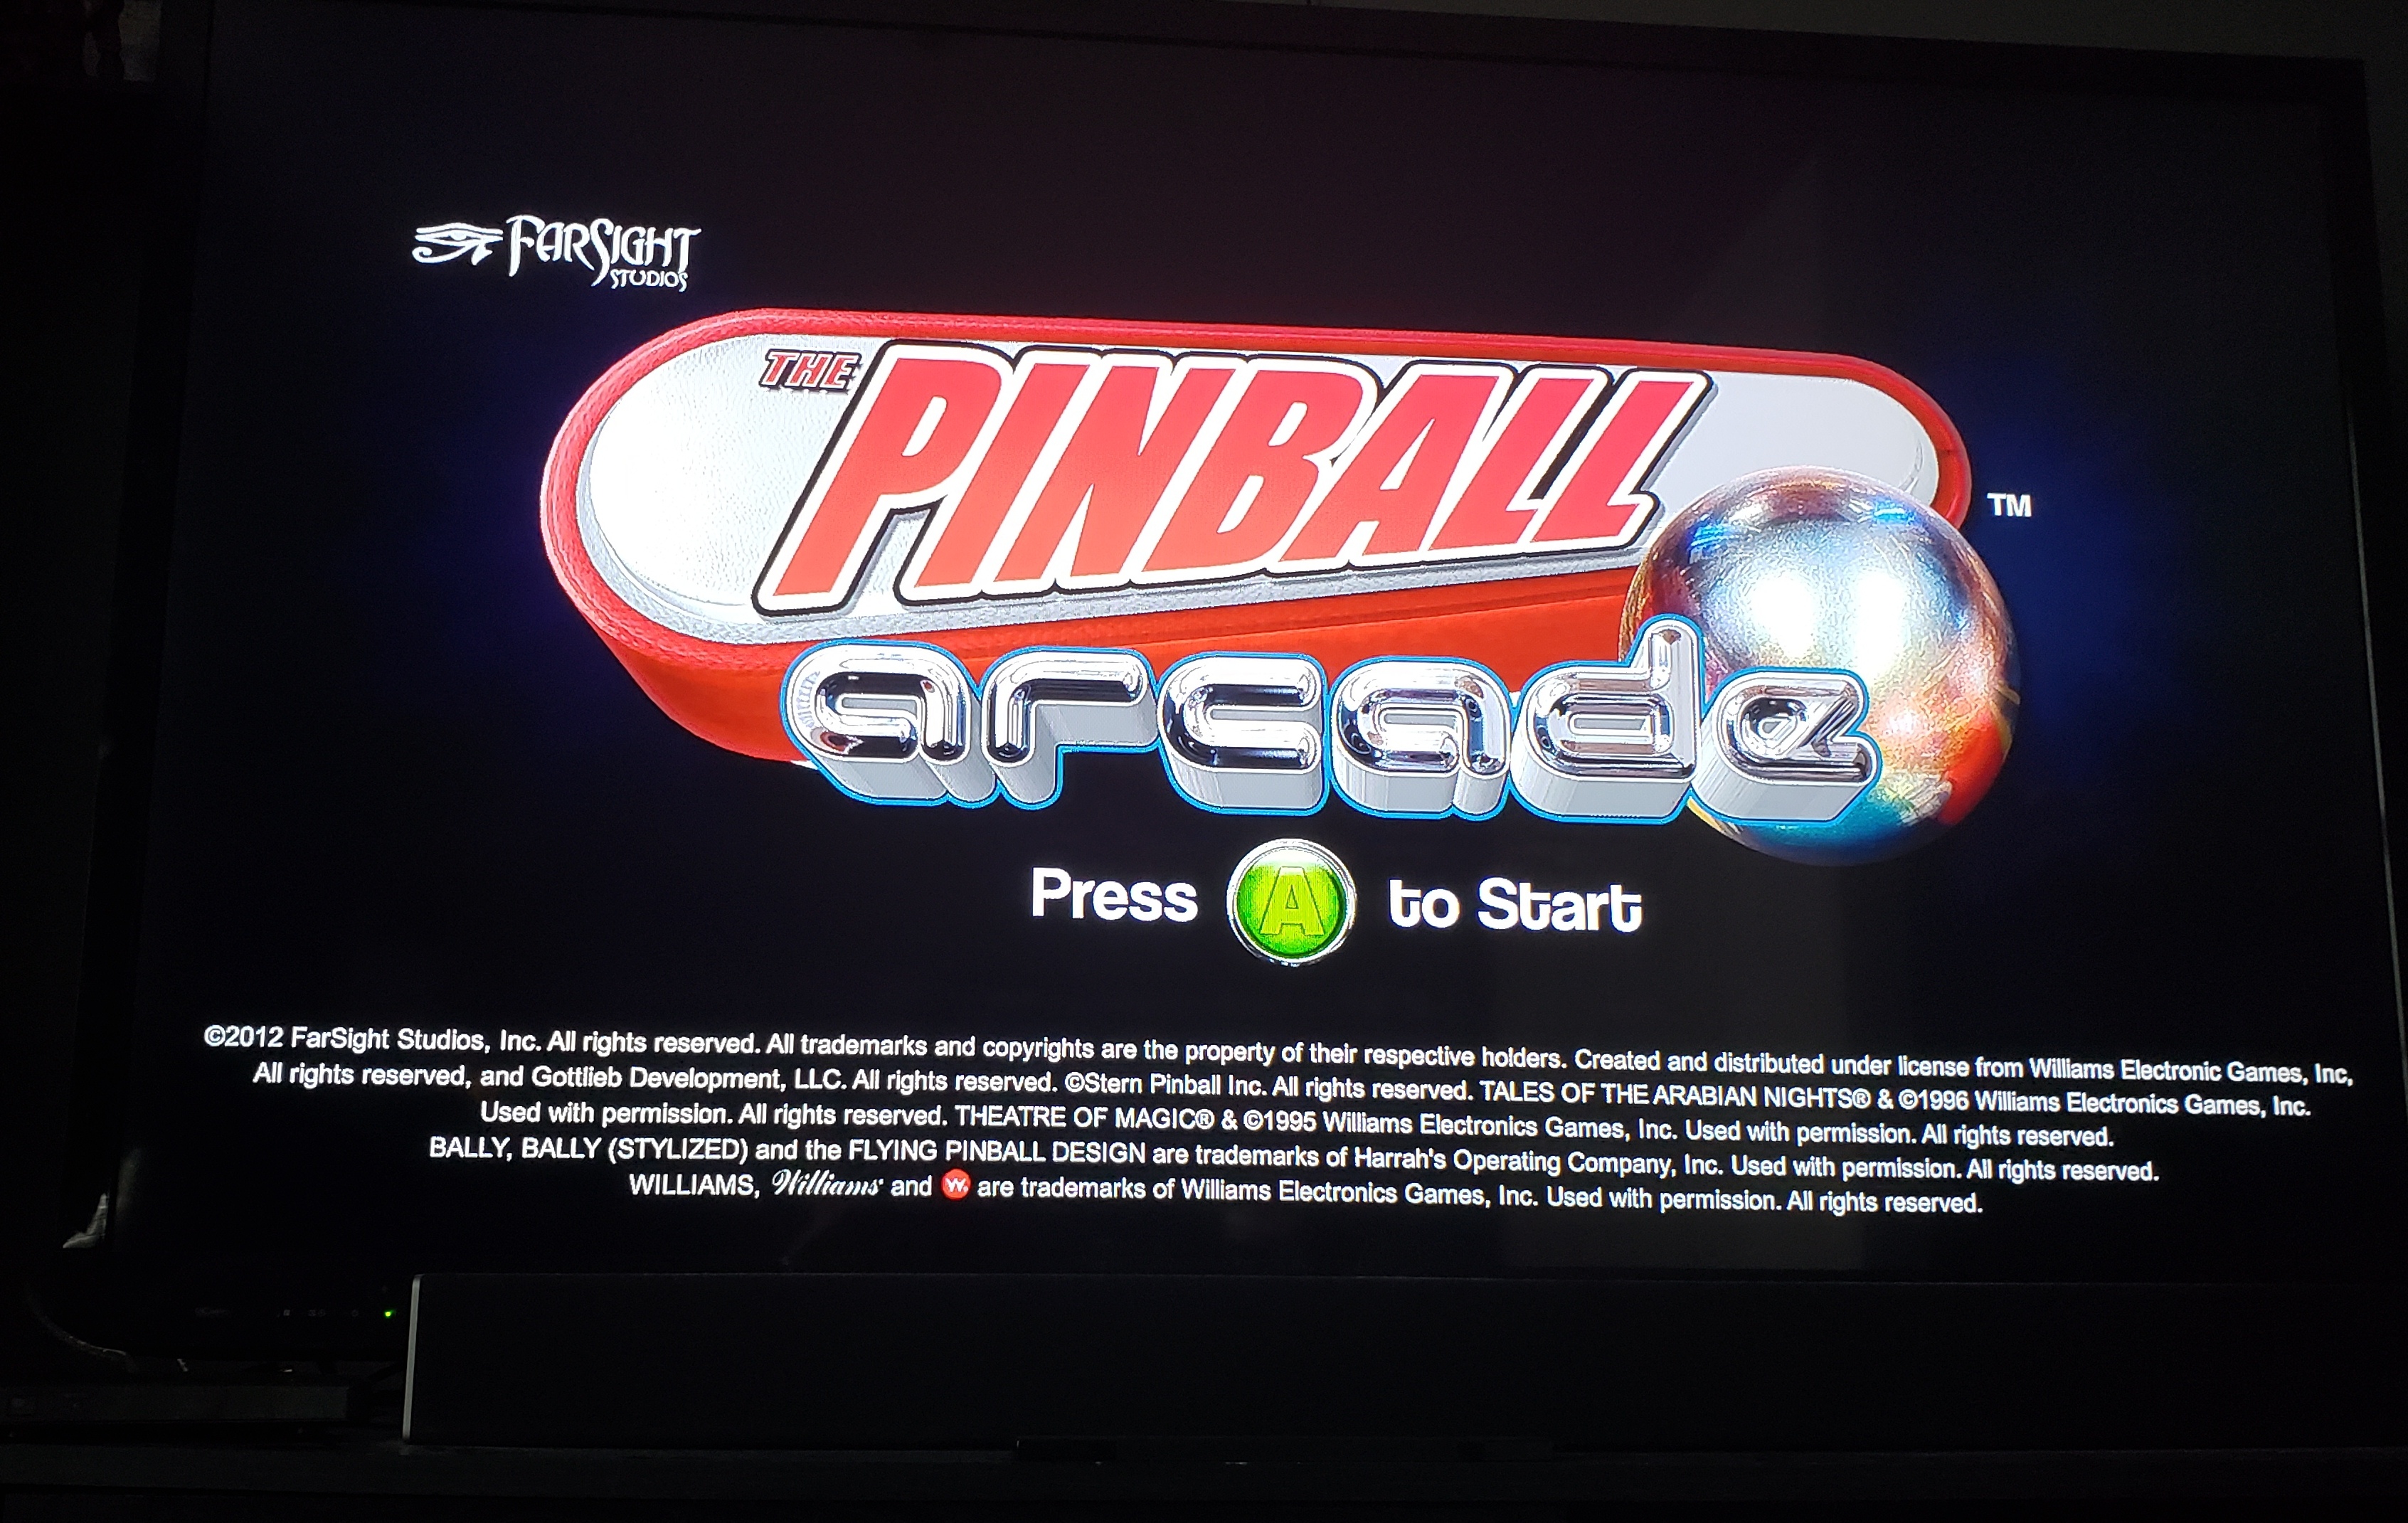 Stryker: Pinball Arcade: Funhouse (Xbox 360) 26,969,980 points on 2019-01-13 14:22:24